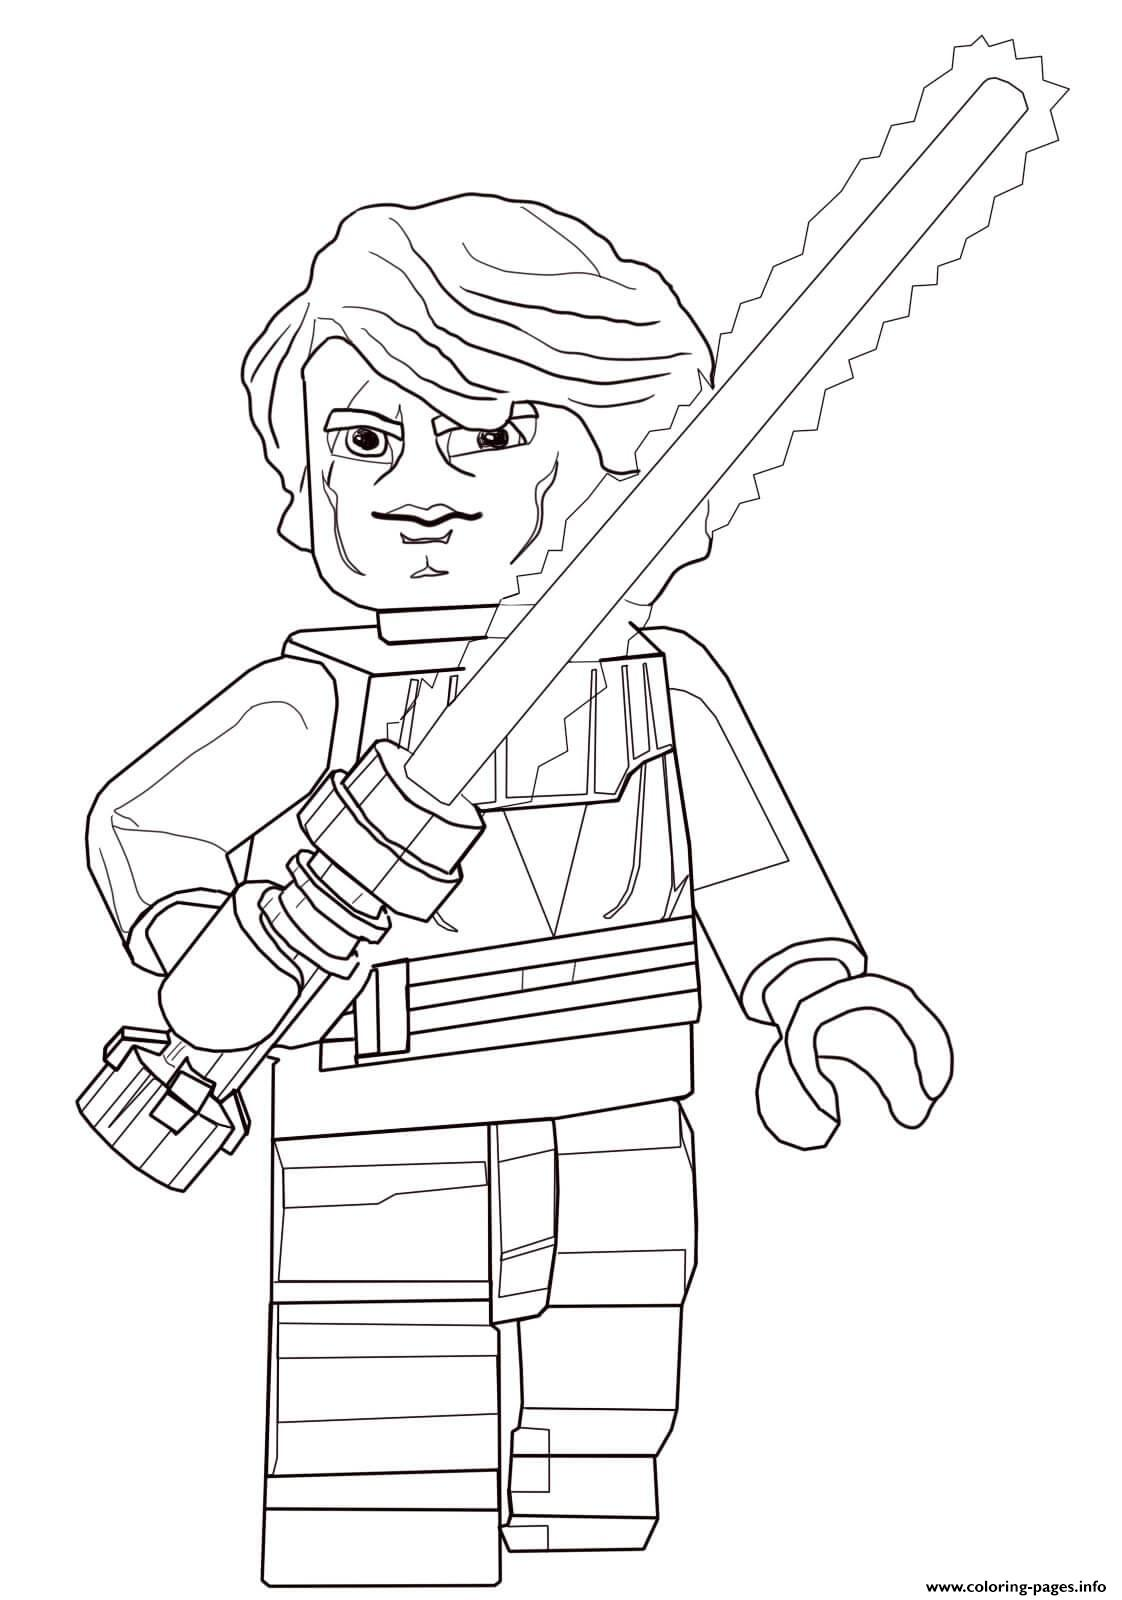 Lego Star Wars Anakin Skywalker coloring pages